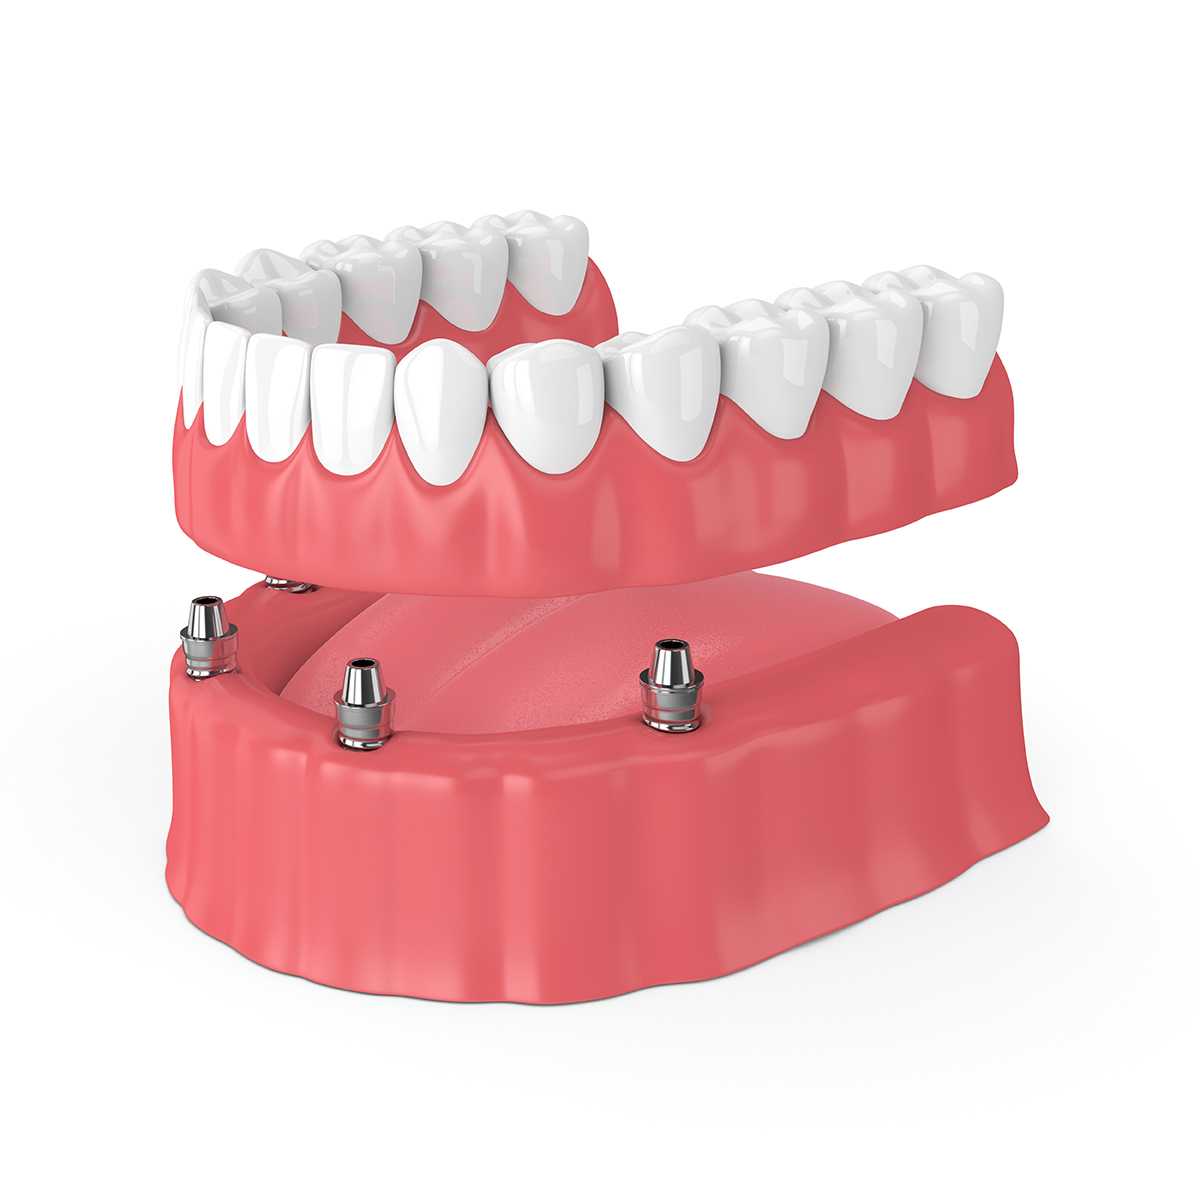 3d render of removable full implant denture